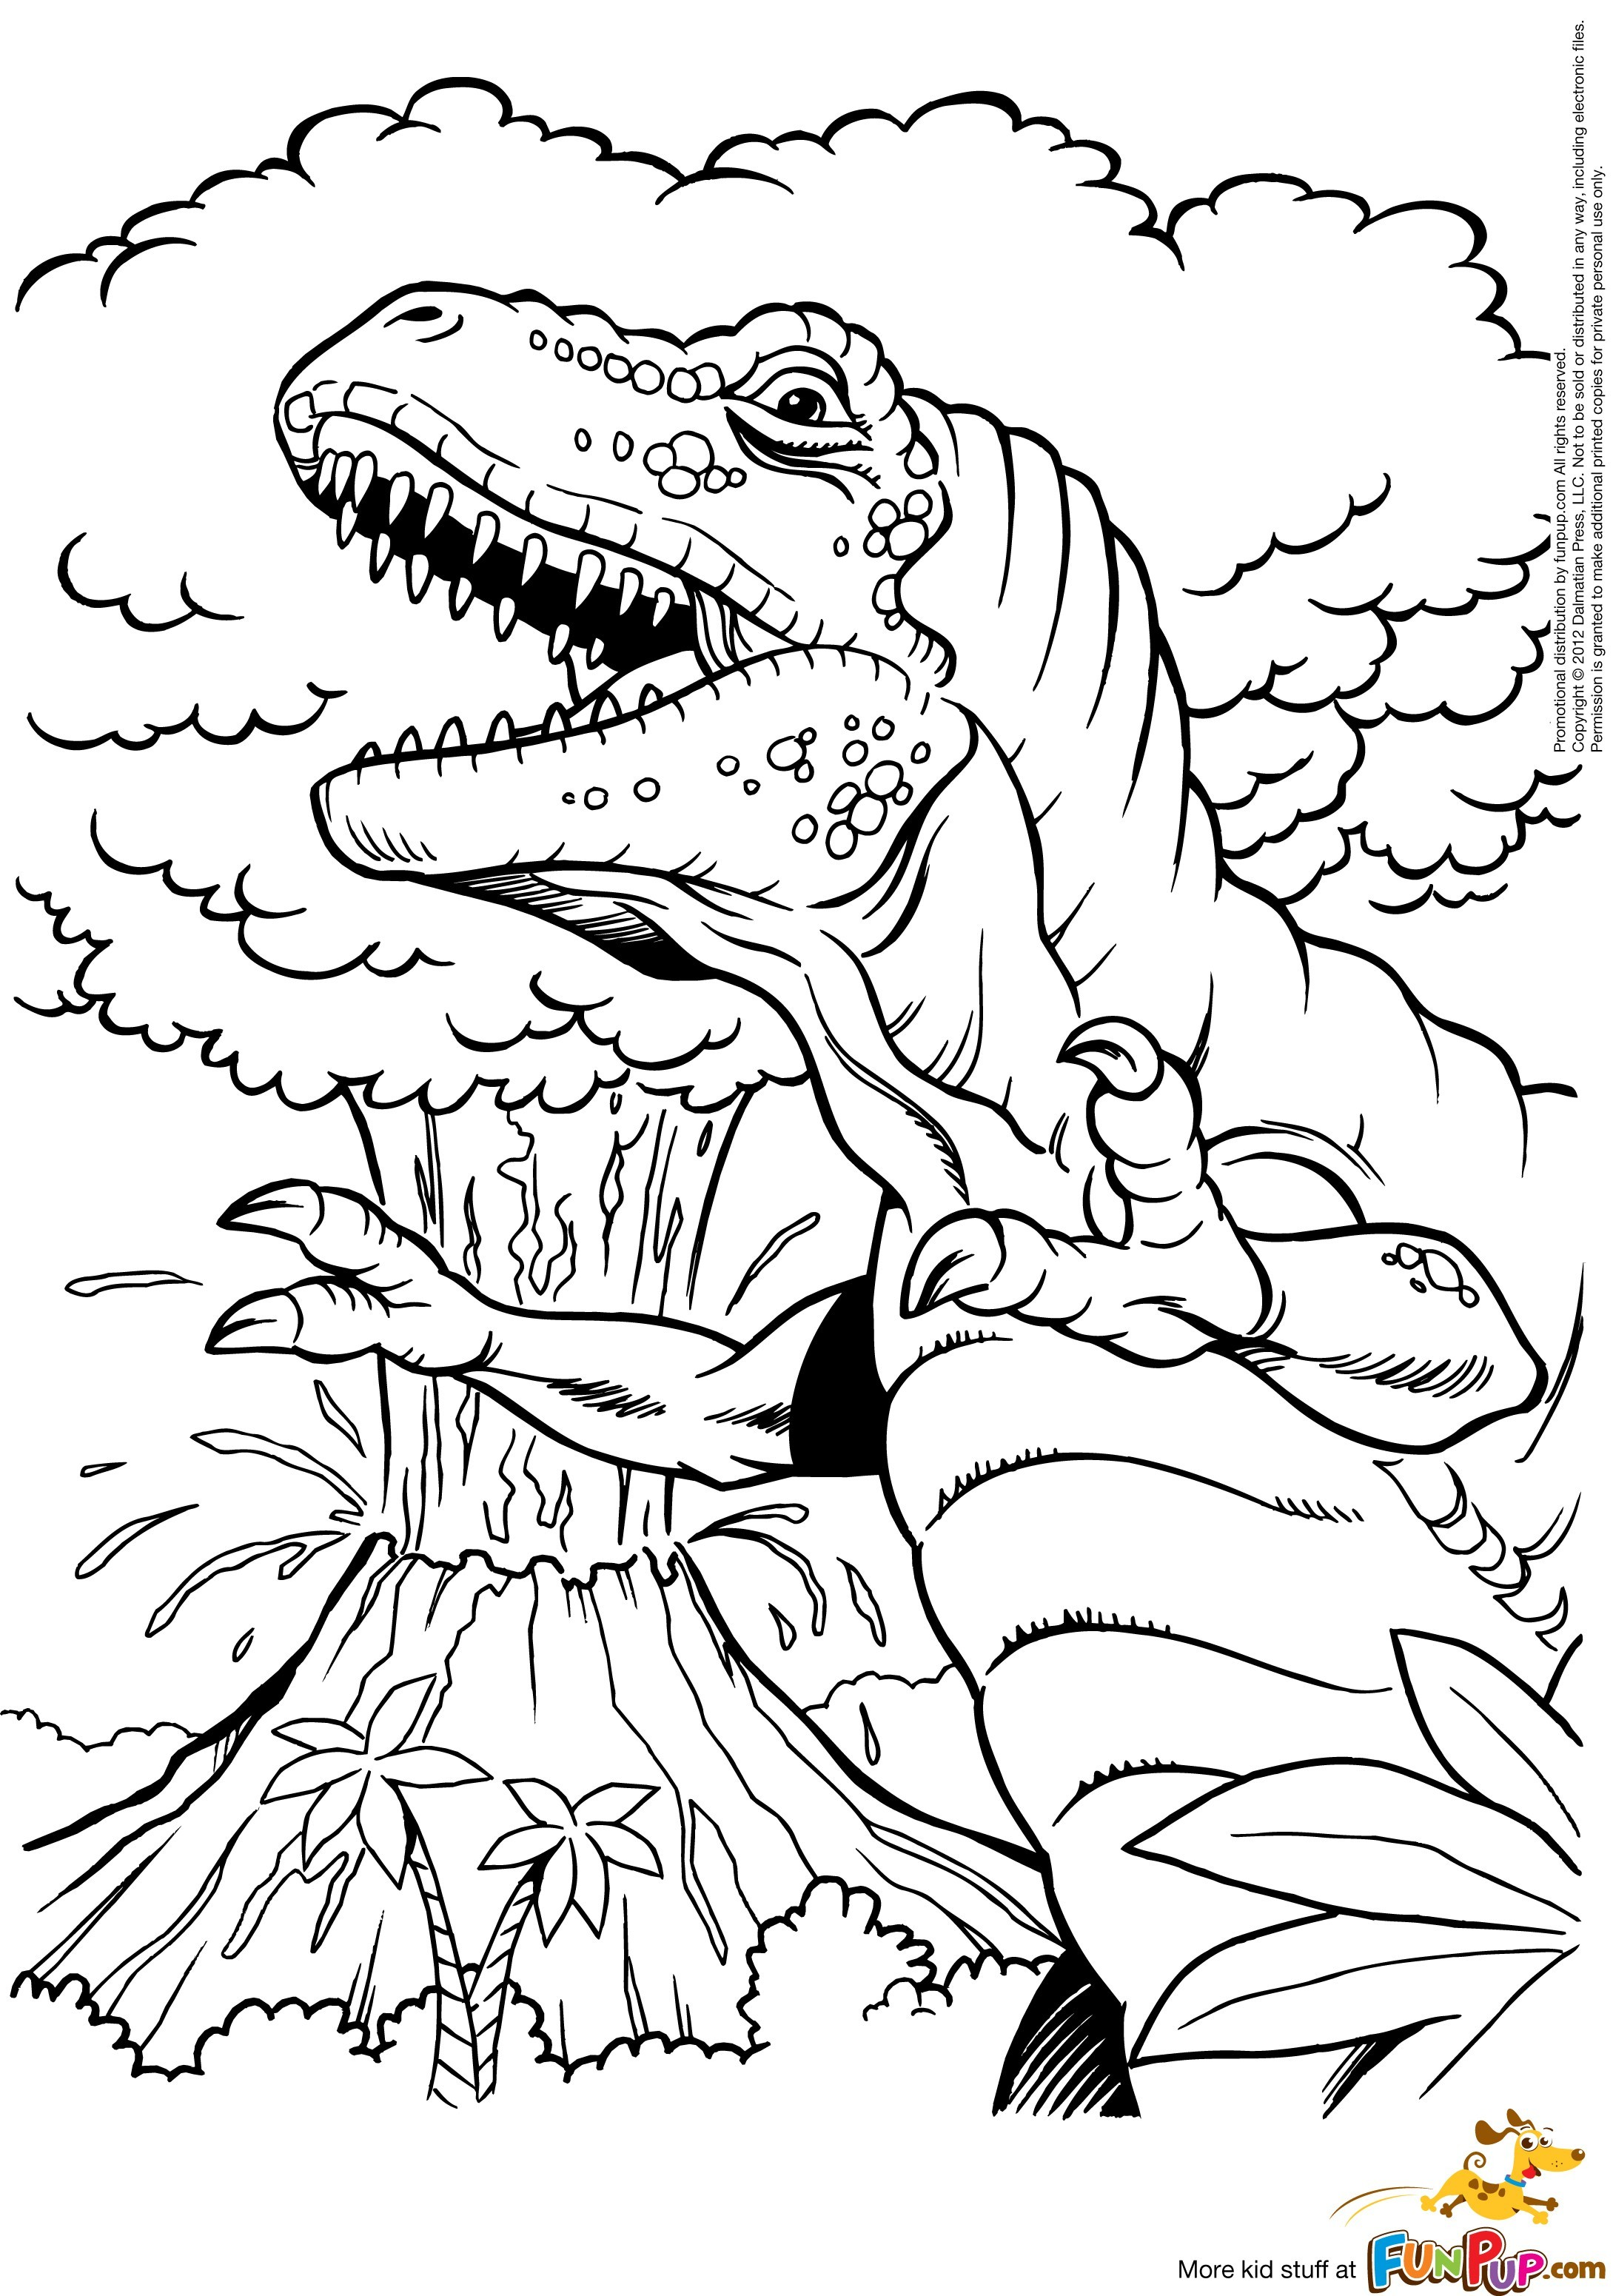 2179x3101 Tron Coloring Pages Luxury Volcano Coloring Pages Vitlt Free